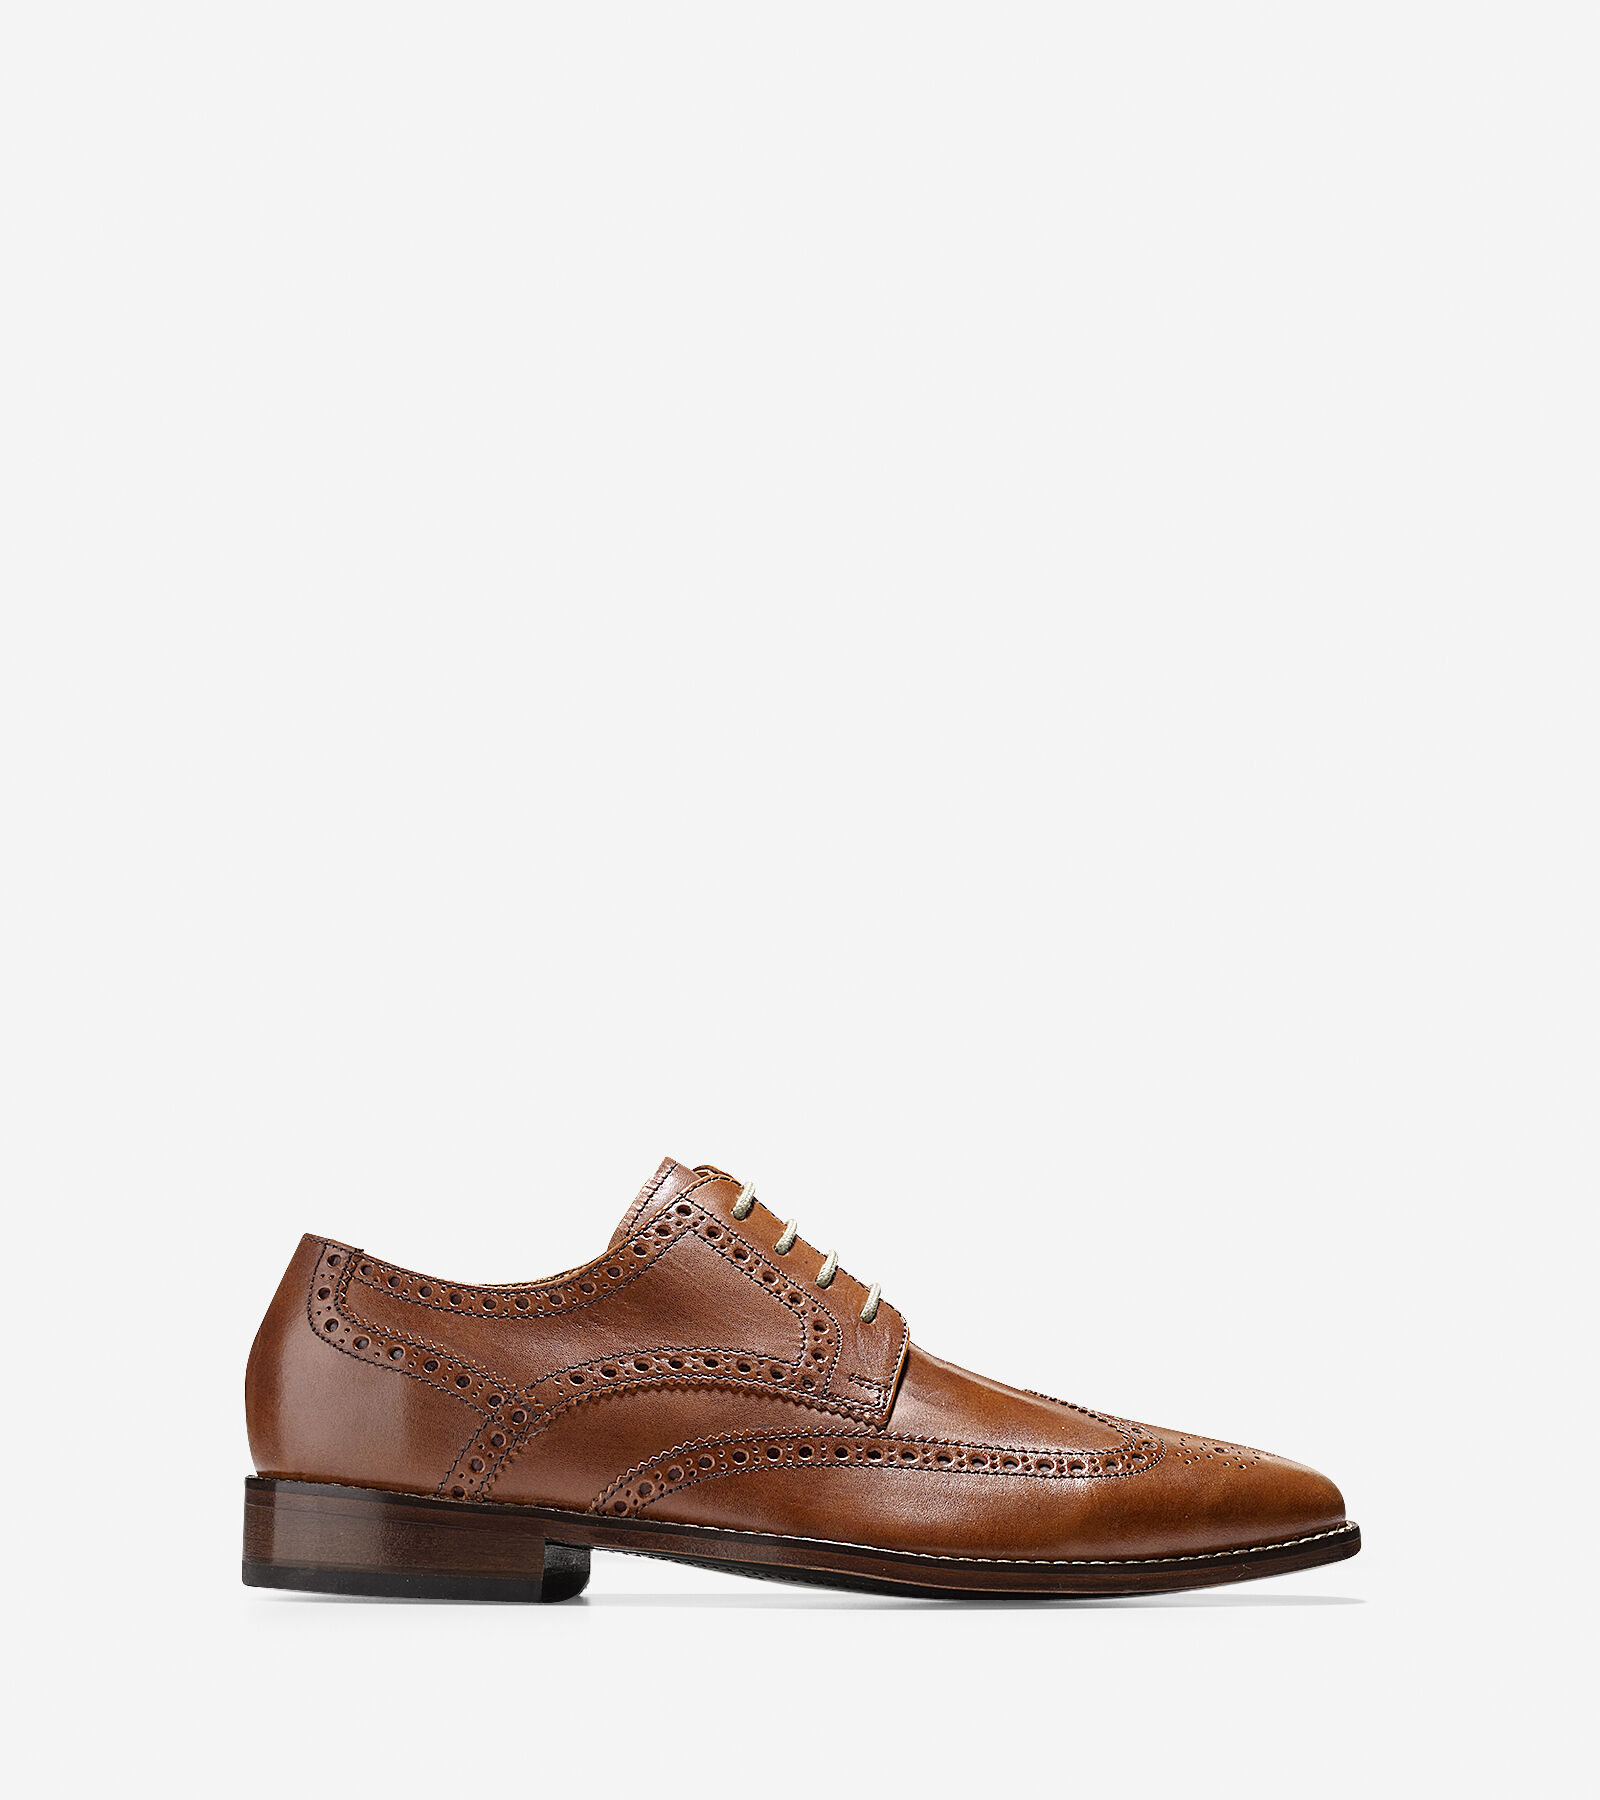 Cole Haan shoes 17